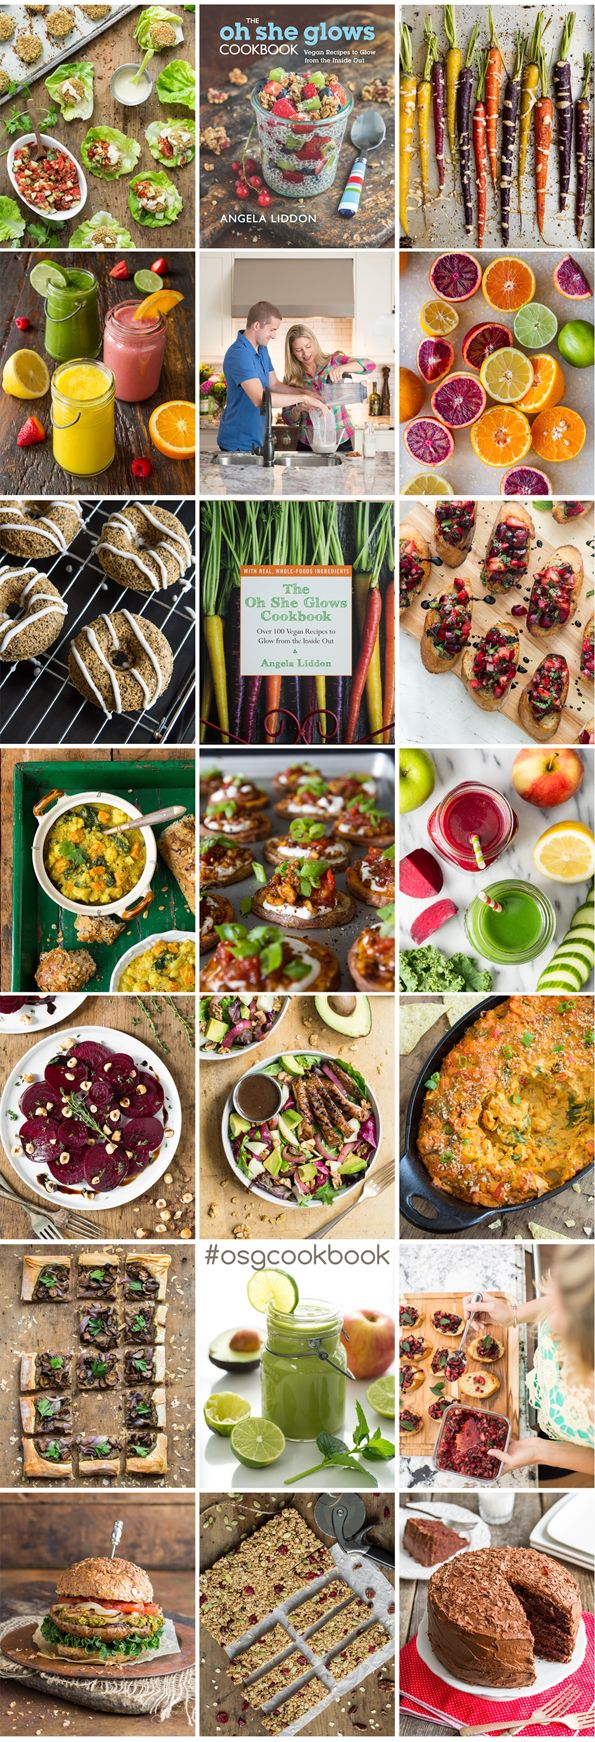 The Oh She Glows Cookbook! Packed with over 100 healthy vegan recipes and over 100 full-page photos #osgcookbook